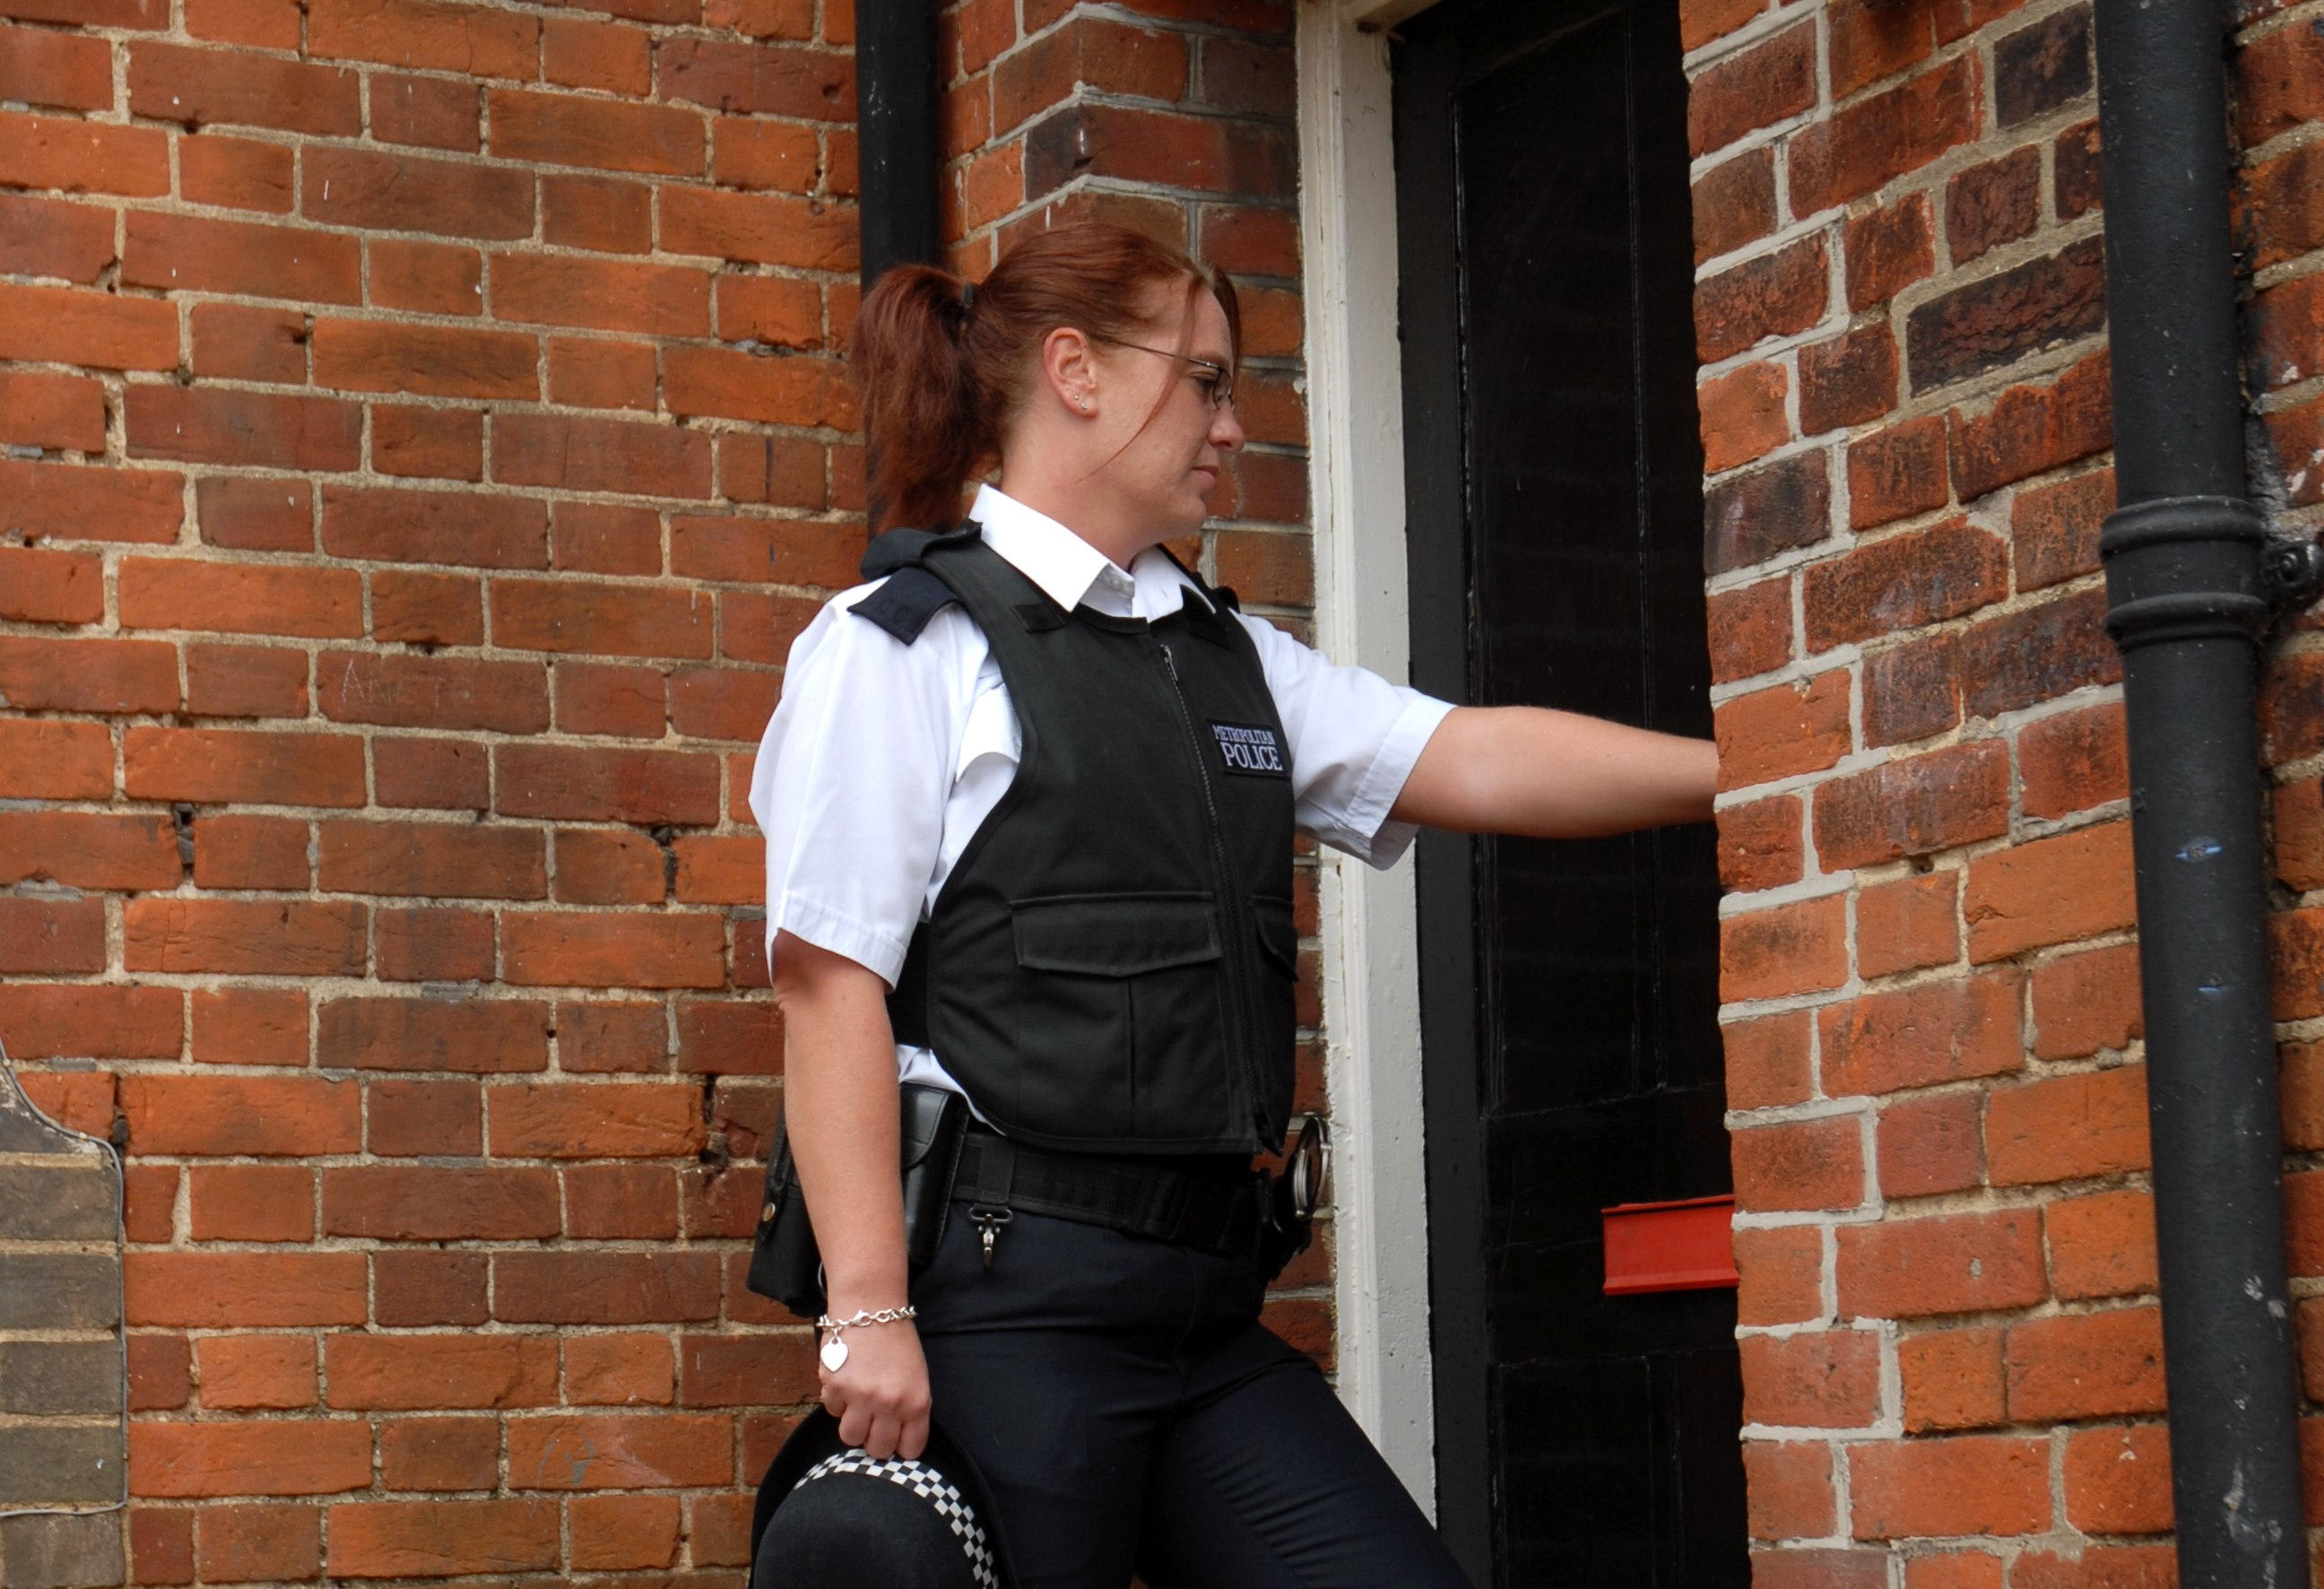 Female police officer knocking on door